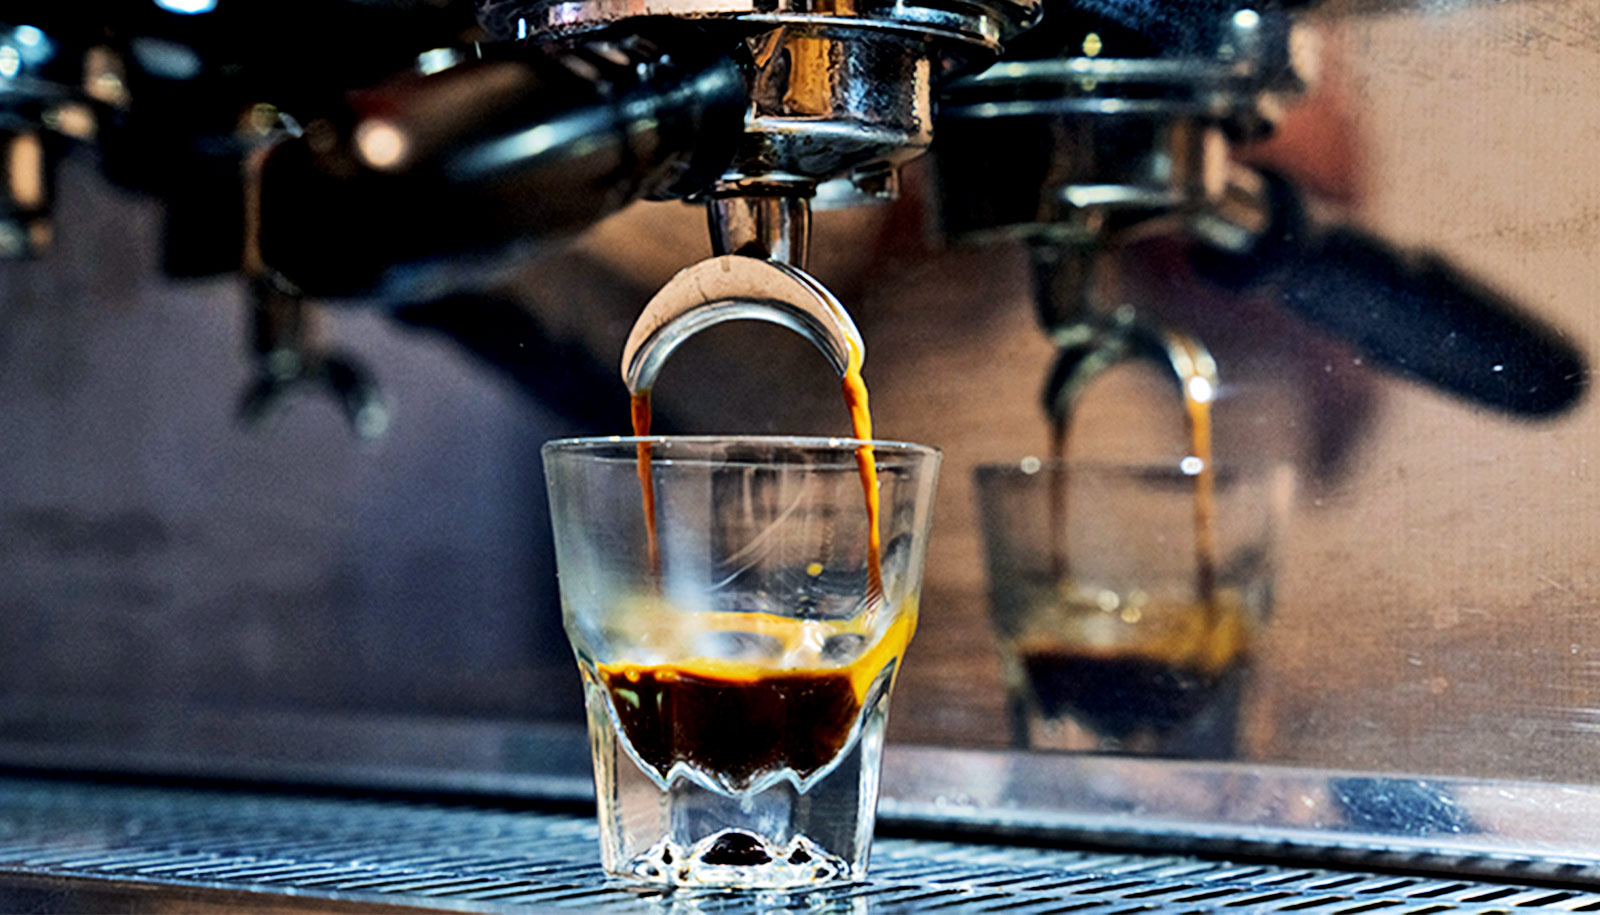 To make better espresso, use less coffee